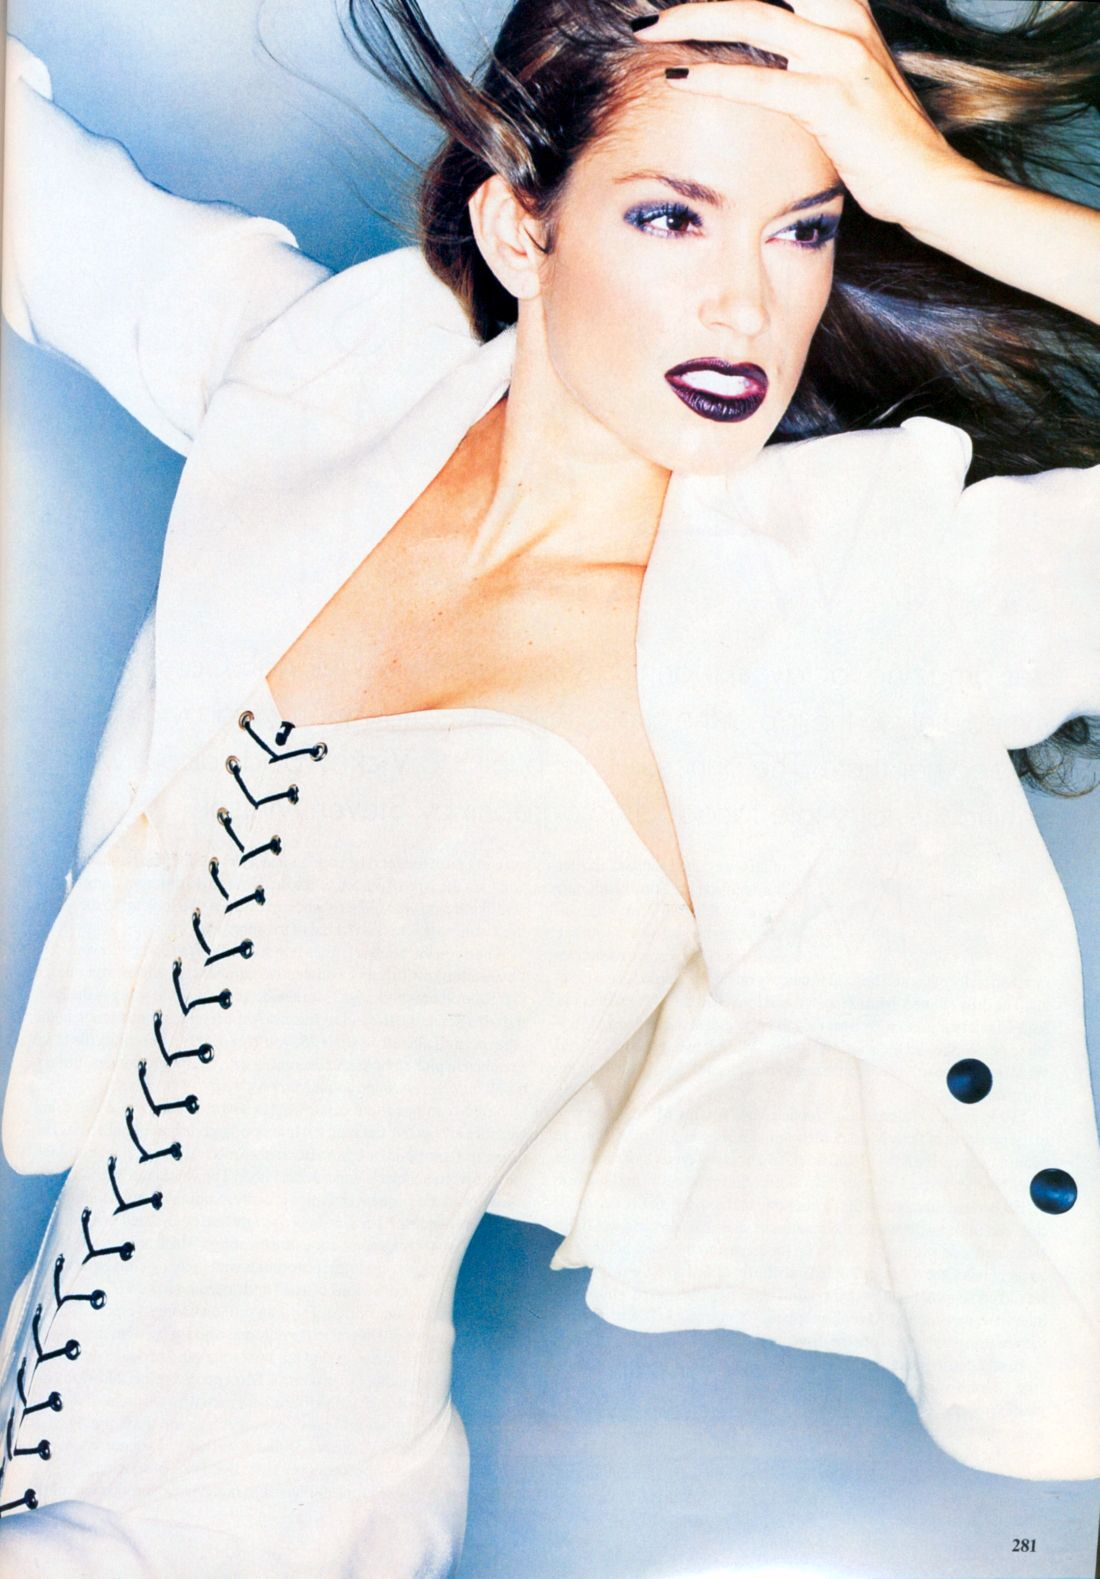 ☆ Cindy Crawford | Photography by Nick Knight | For Vogue Magazine US | December 1994 ☆